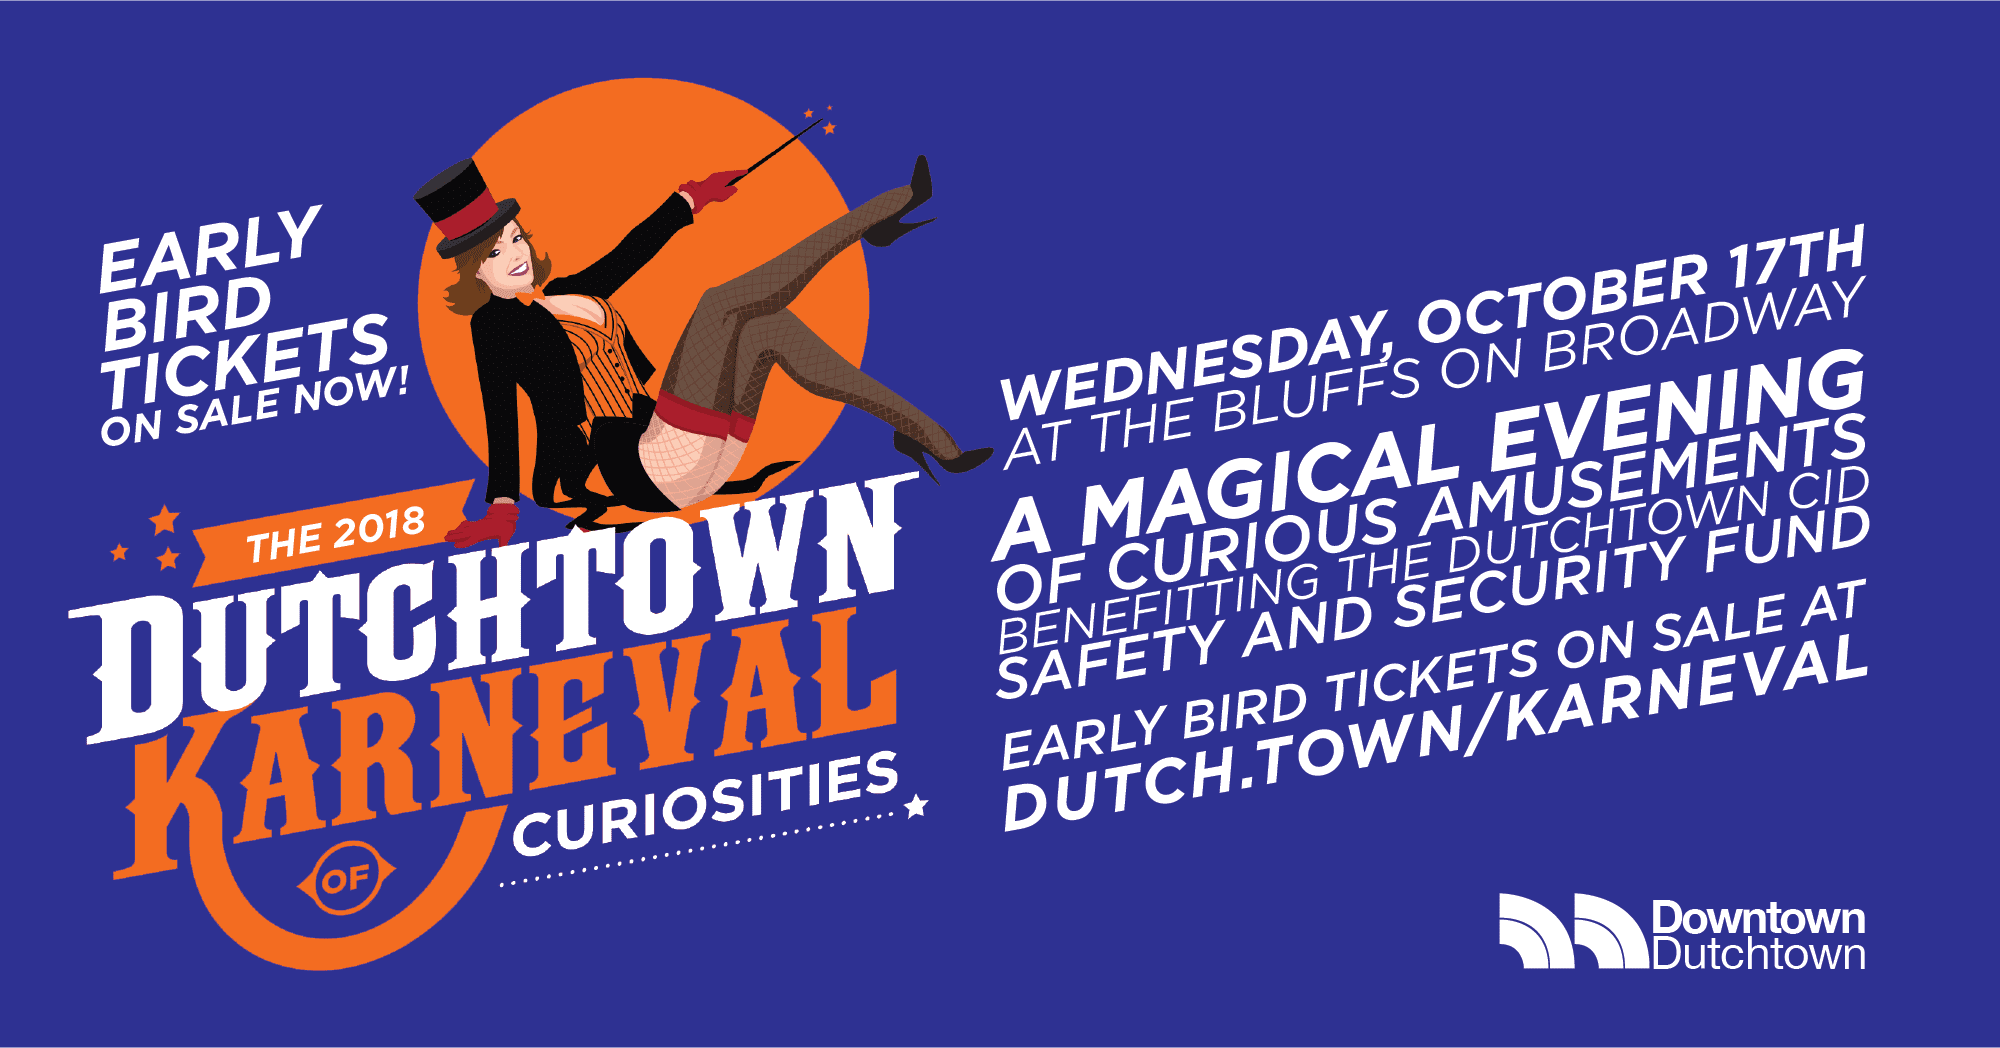 Early Bird tickets now on sale for the 2018 Dutchtown Karneval of Curiosities!